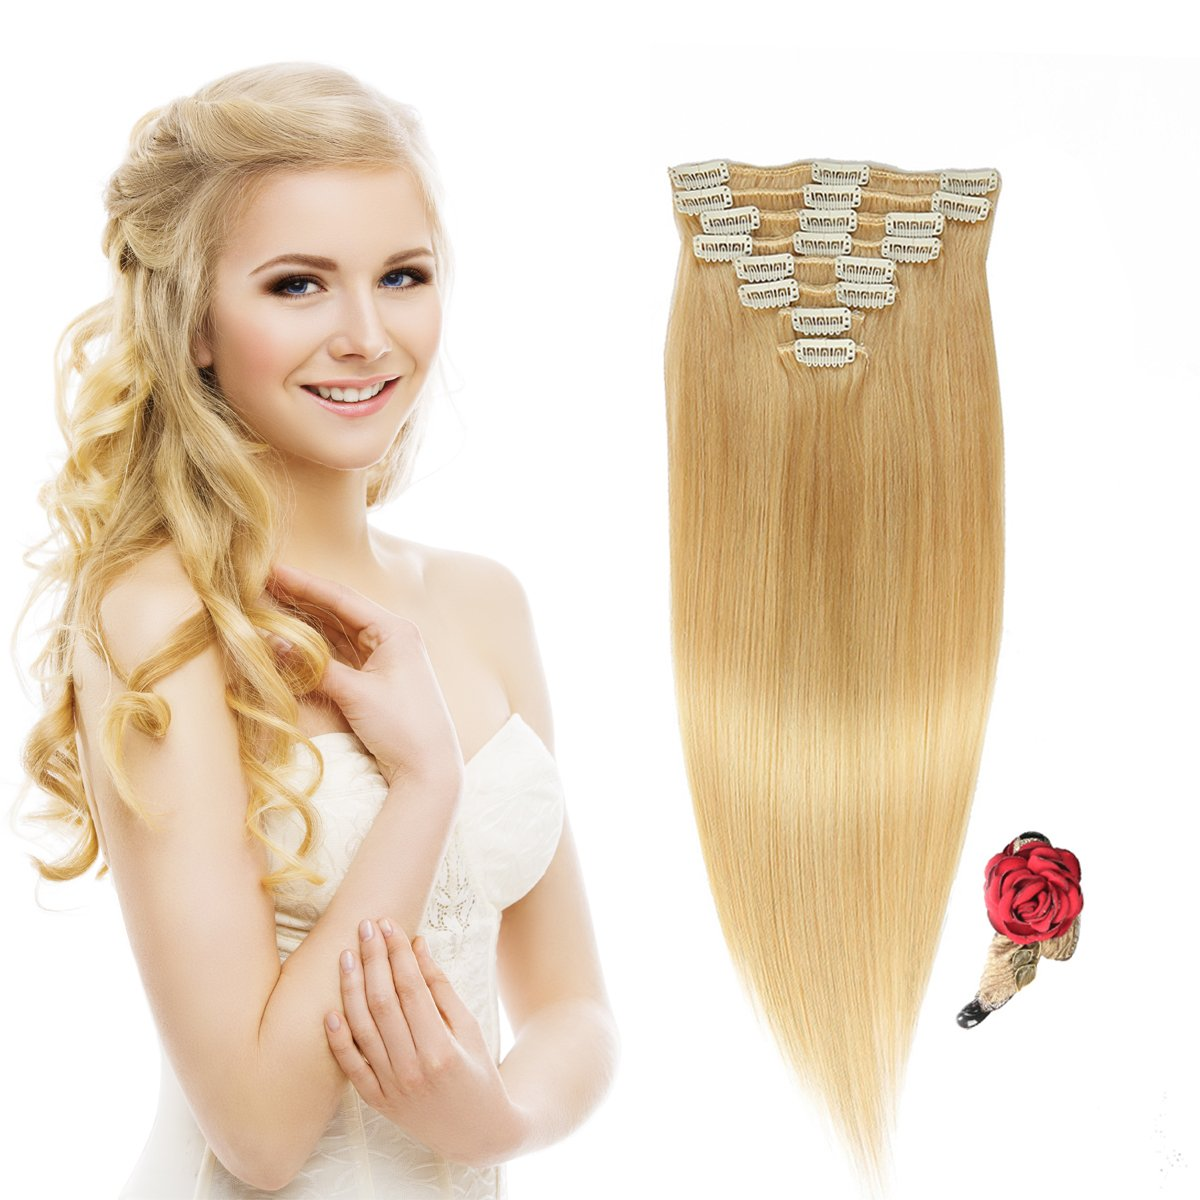 """10"""" Remy Hair Extensions Clip in Human Hair with 18clips 8pcs Soft Smooth Straight feeling for Lady (75g by gross, Bleach Blonde #613)"""